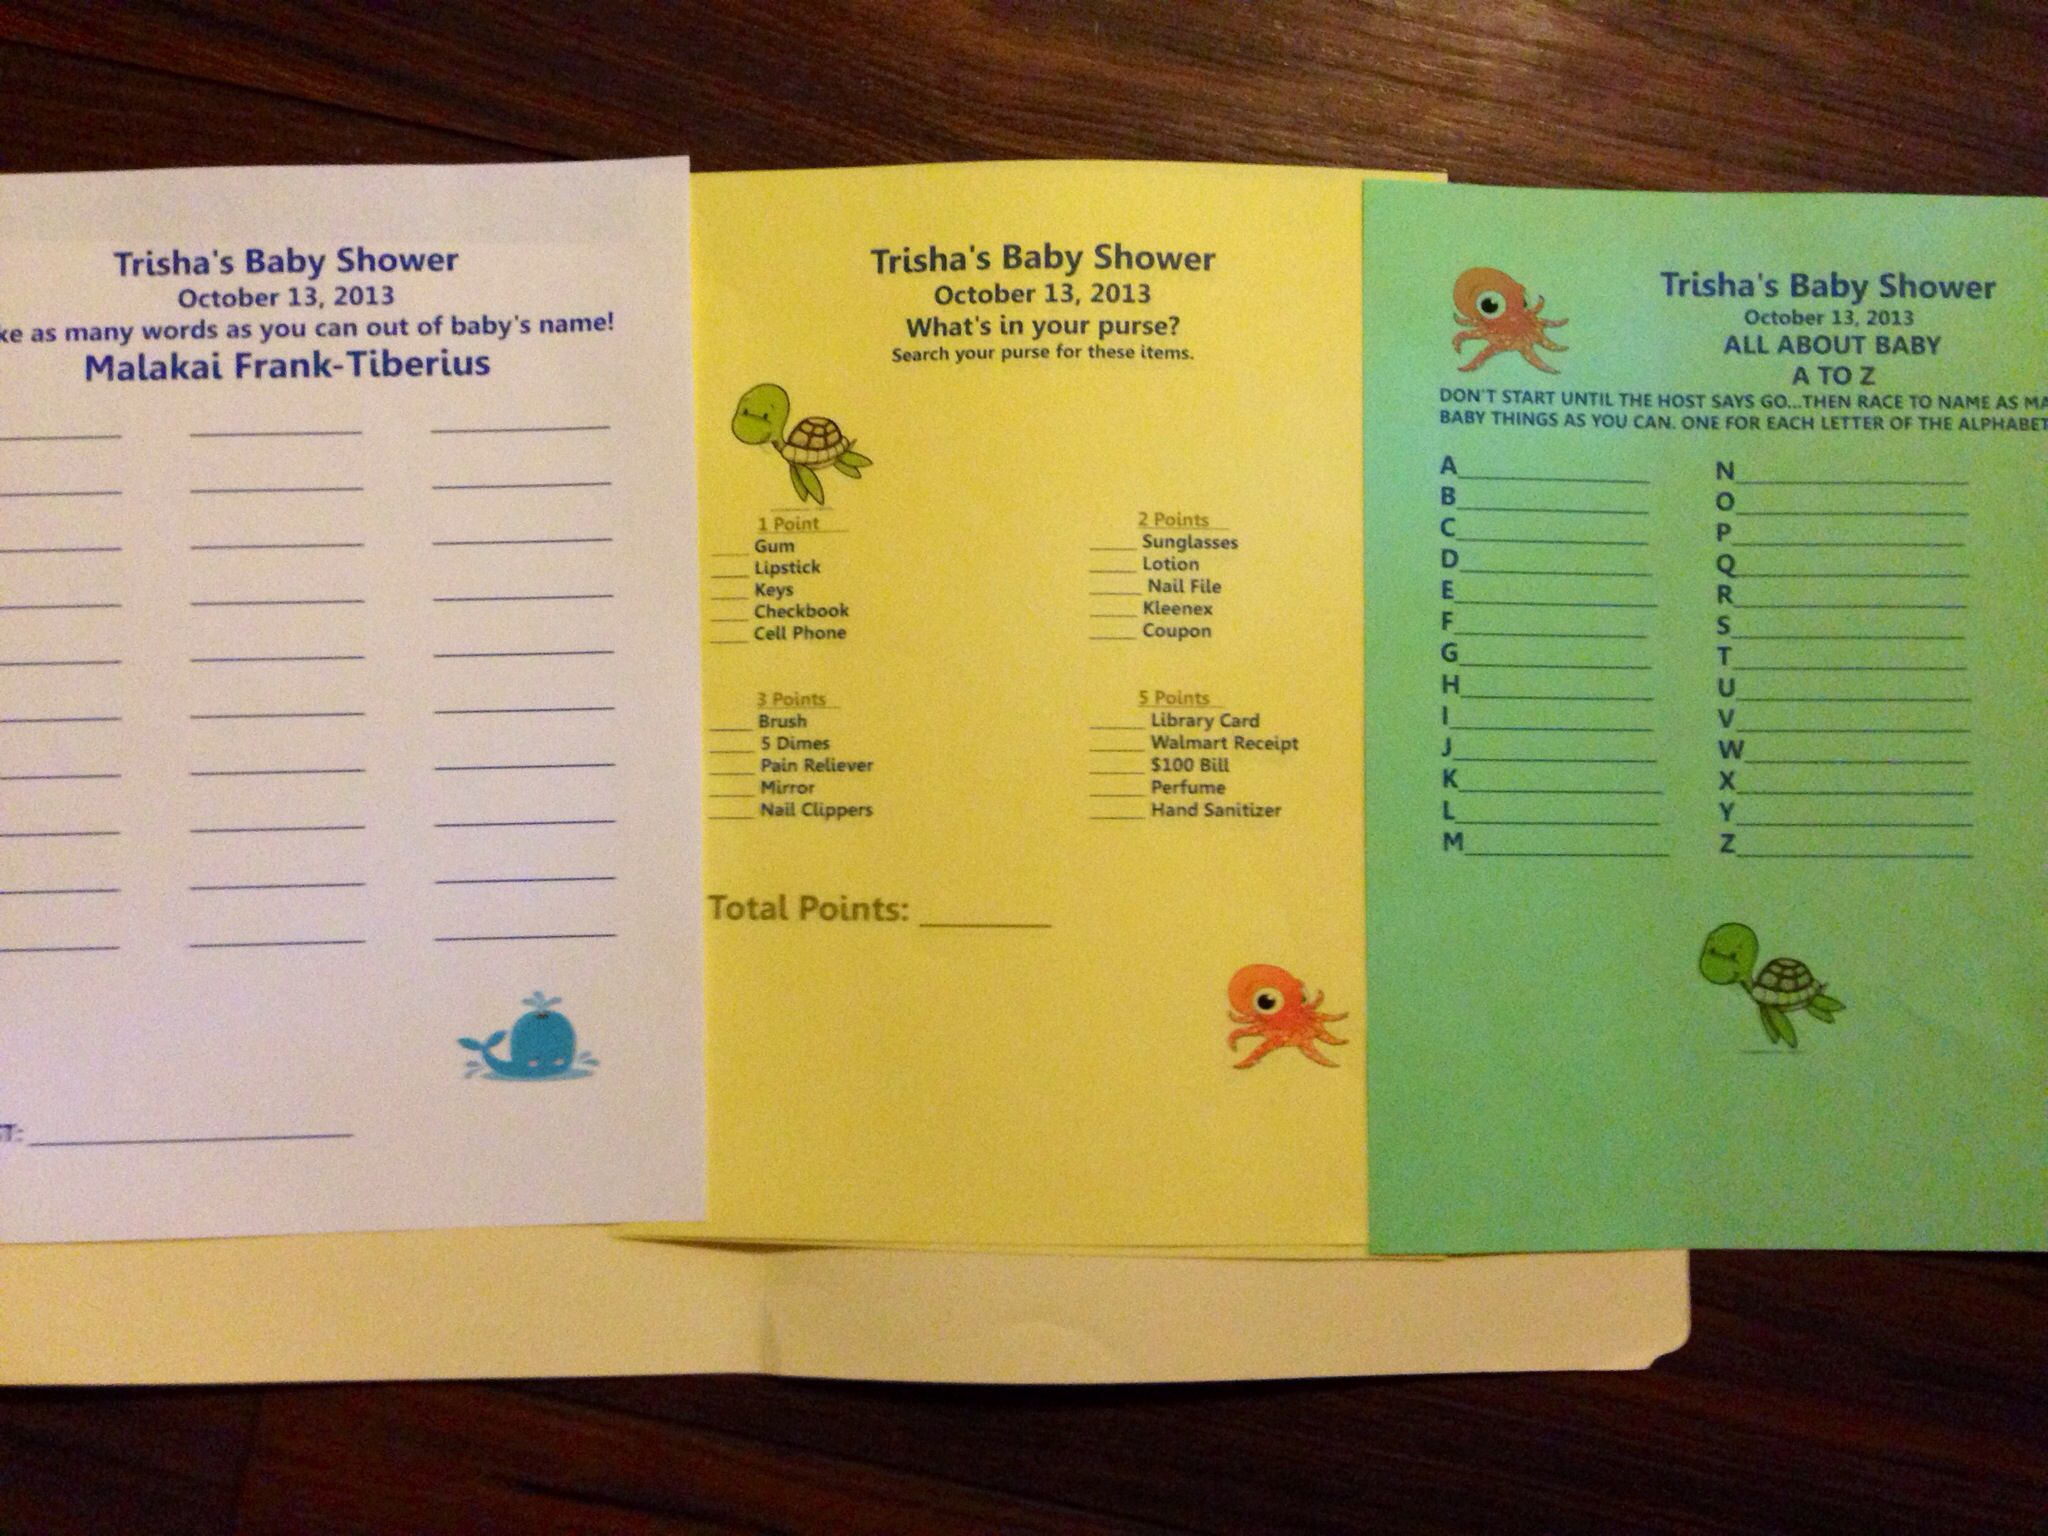 Easy To Recreate Baby Shower Games Laid Back Quiet Sit Back And Relax Kind Of Fun Paper And